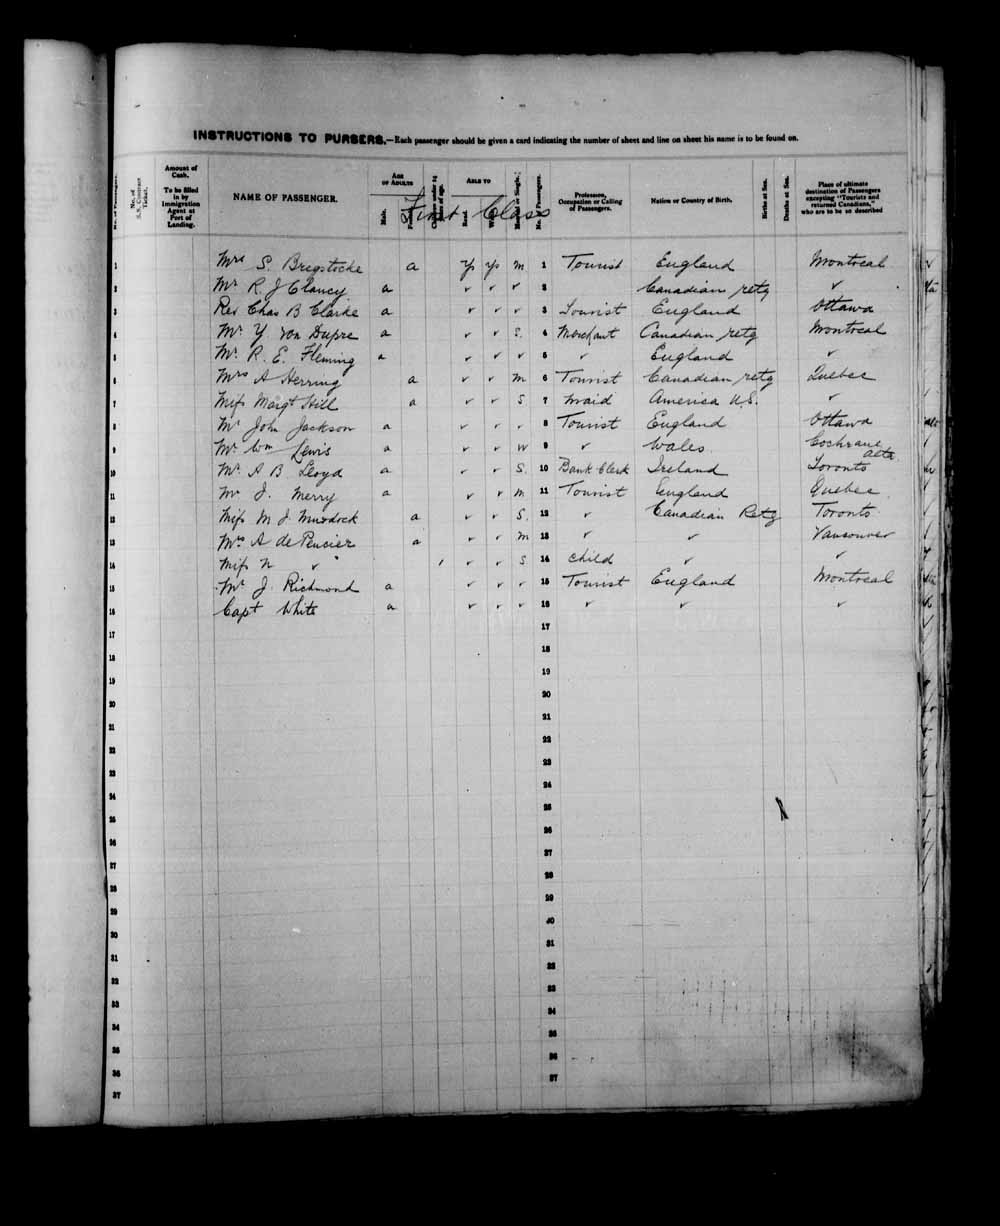 Digitized page of Passenger Lists for Image No.: e003557557